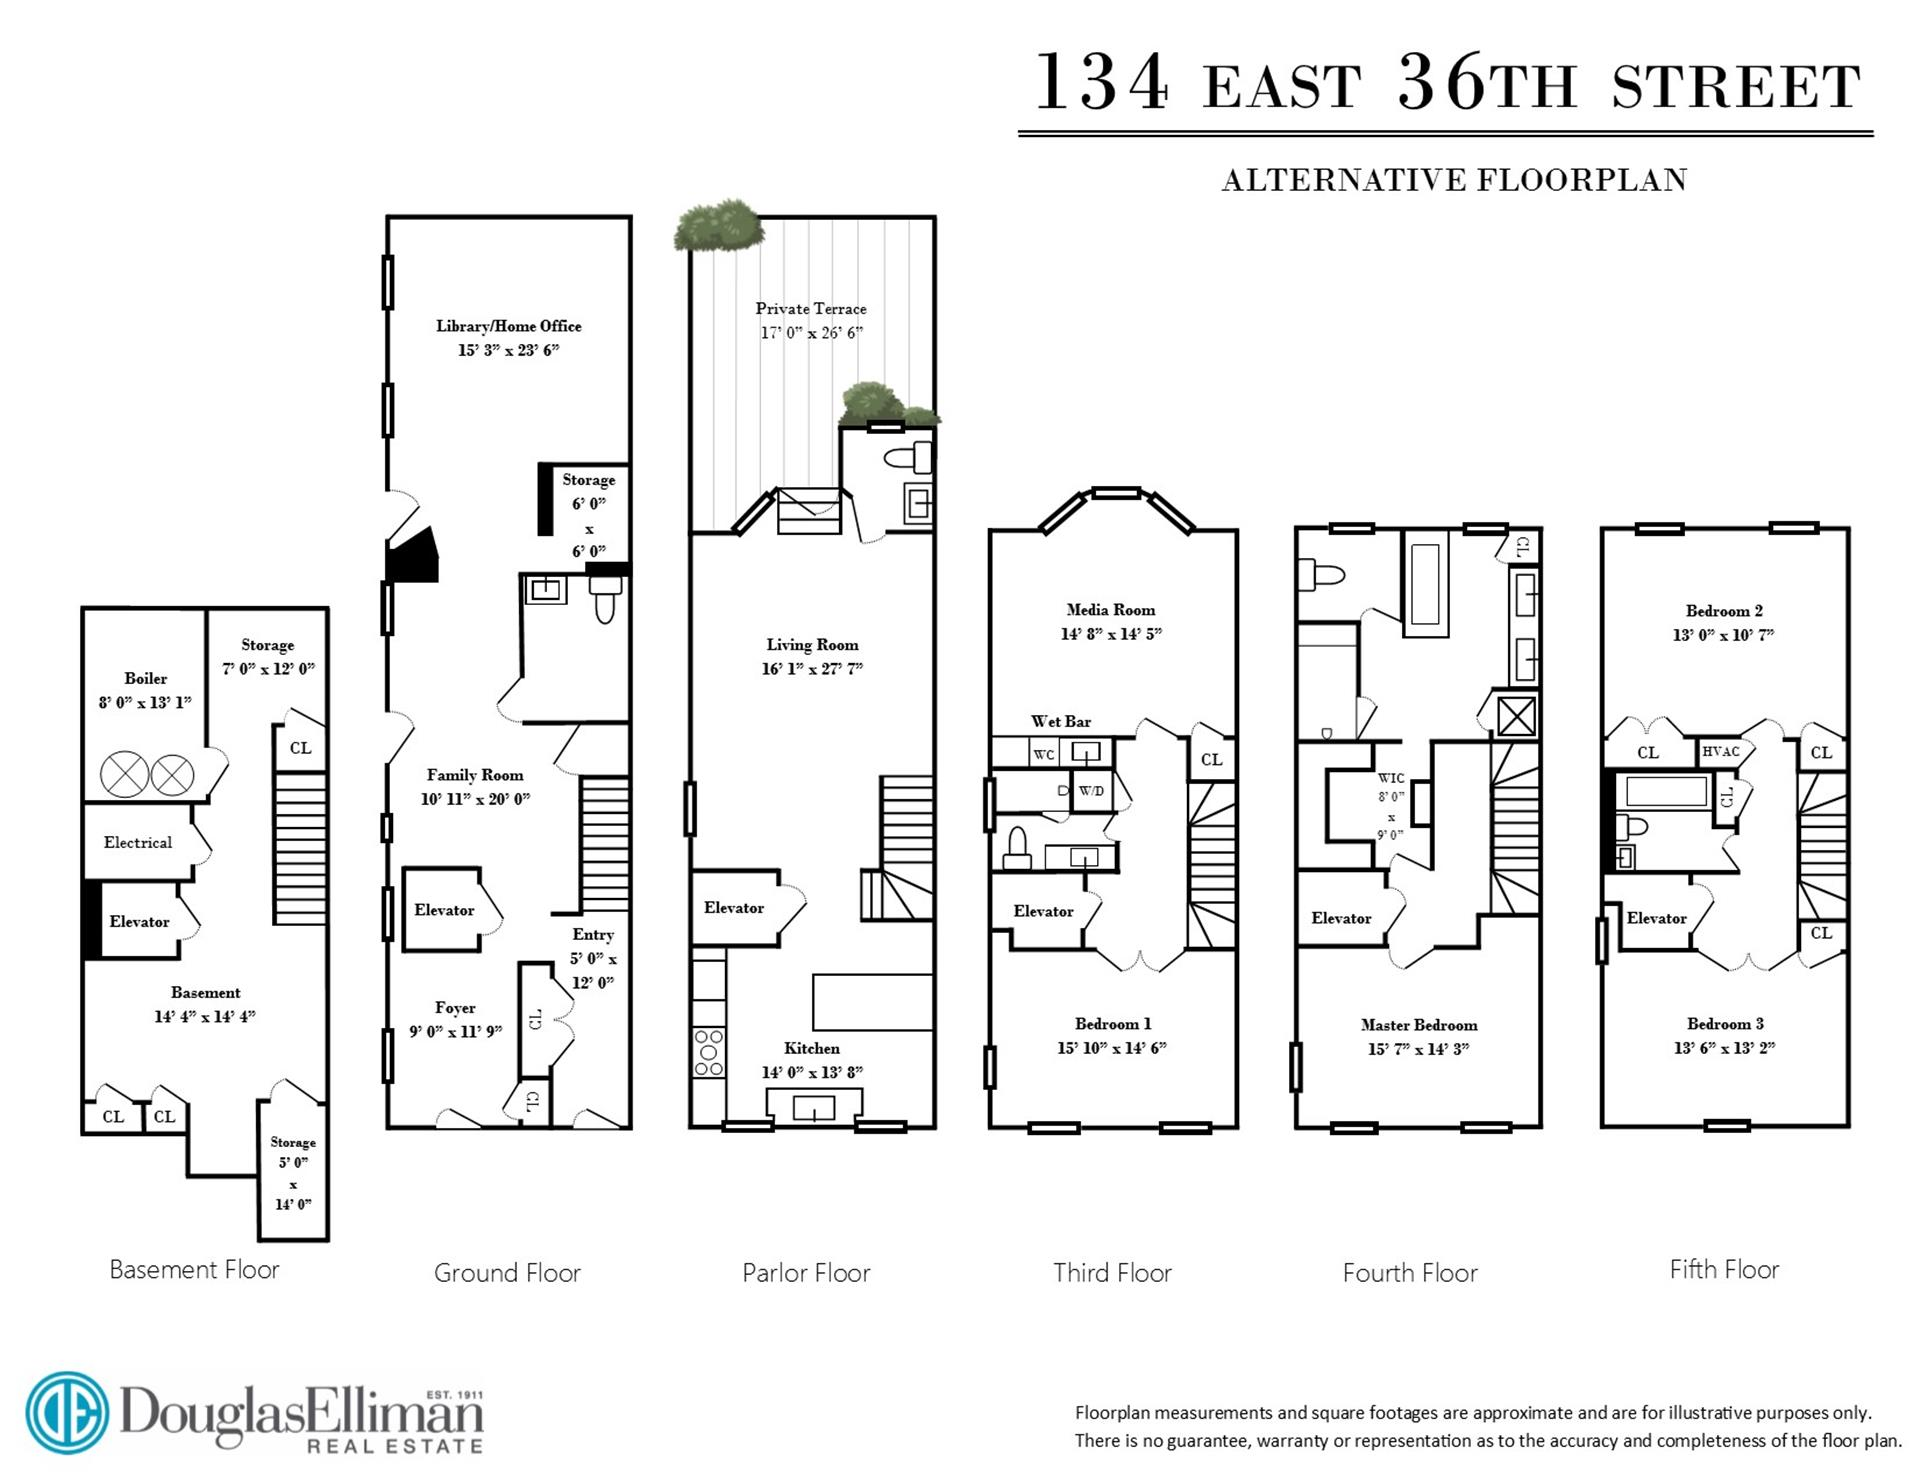 Floor plan of 134 East 36th St - Murray Hill, New York